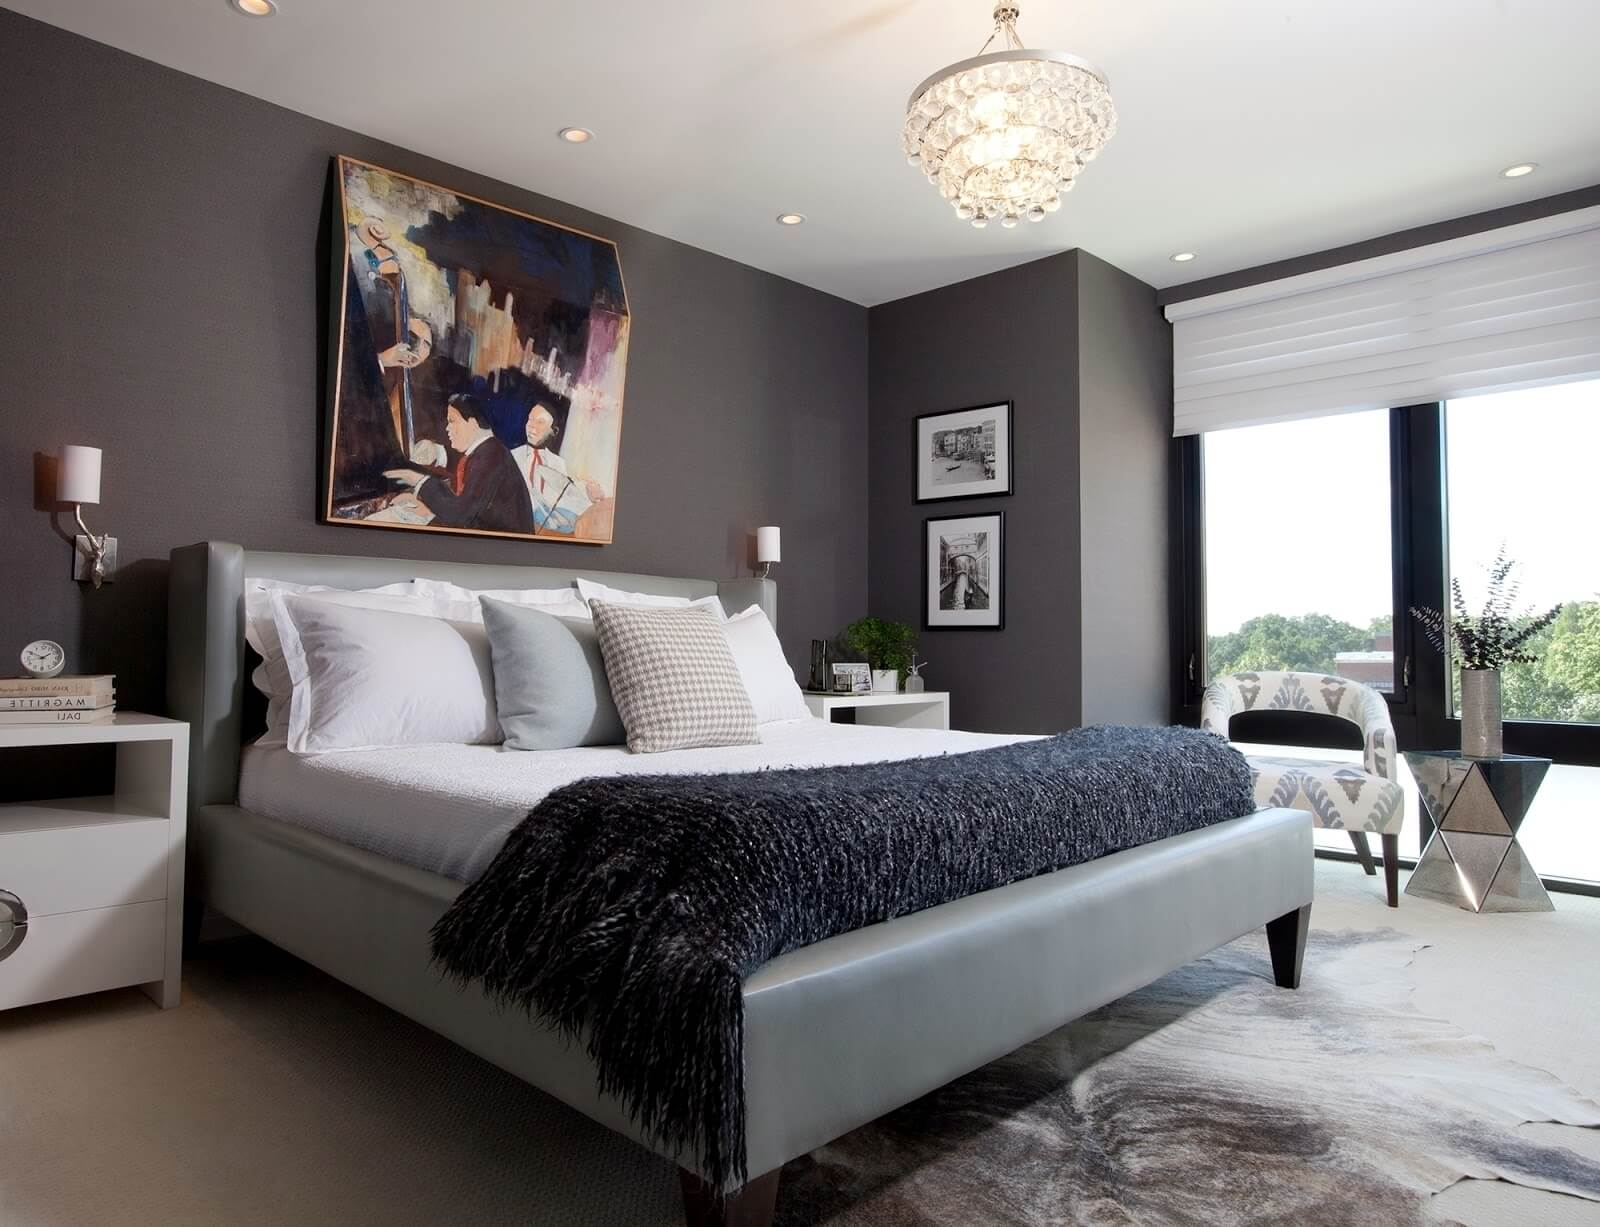 houzz-bedroom-ideas-elegant-bedrooms-beds-houzz-pertaining-to